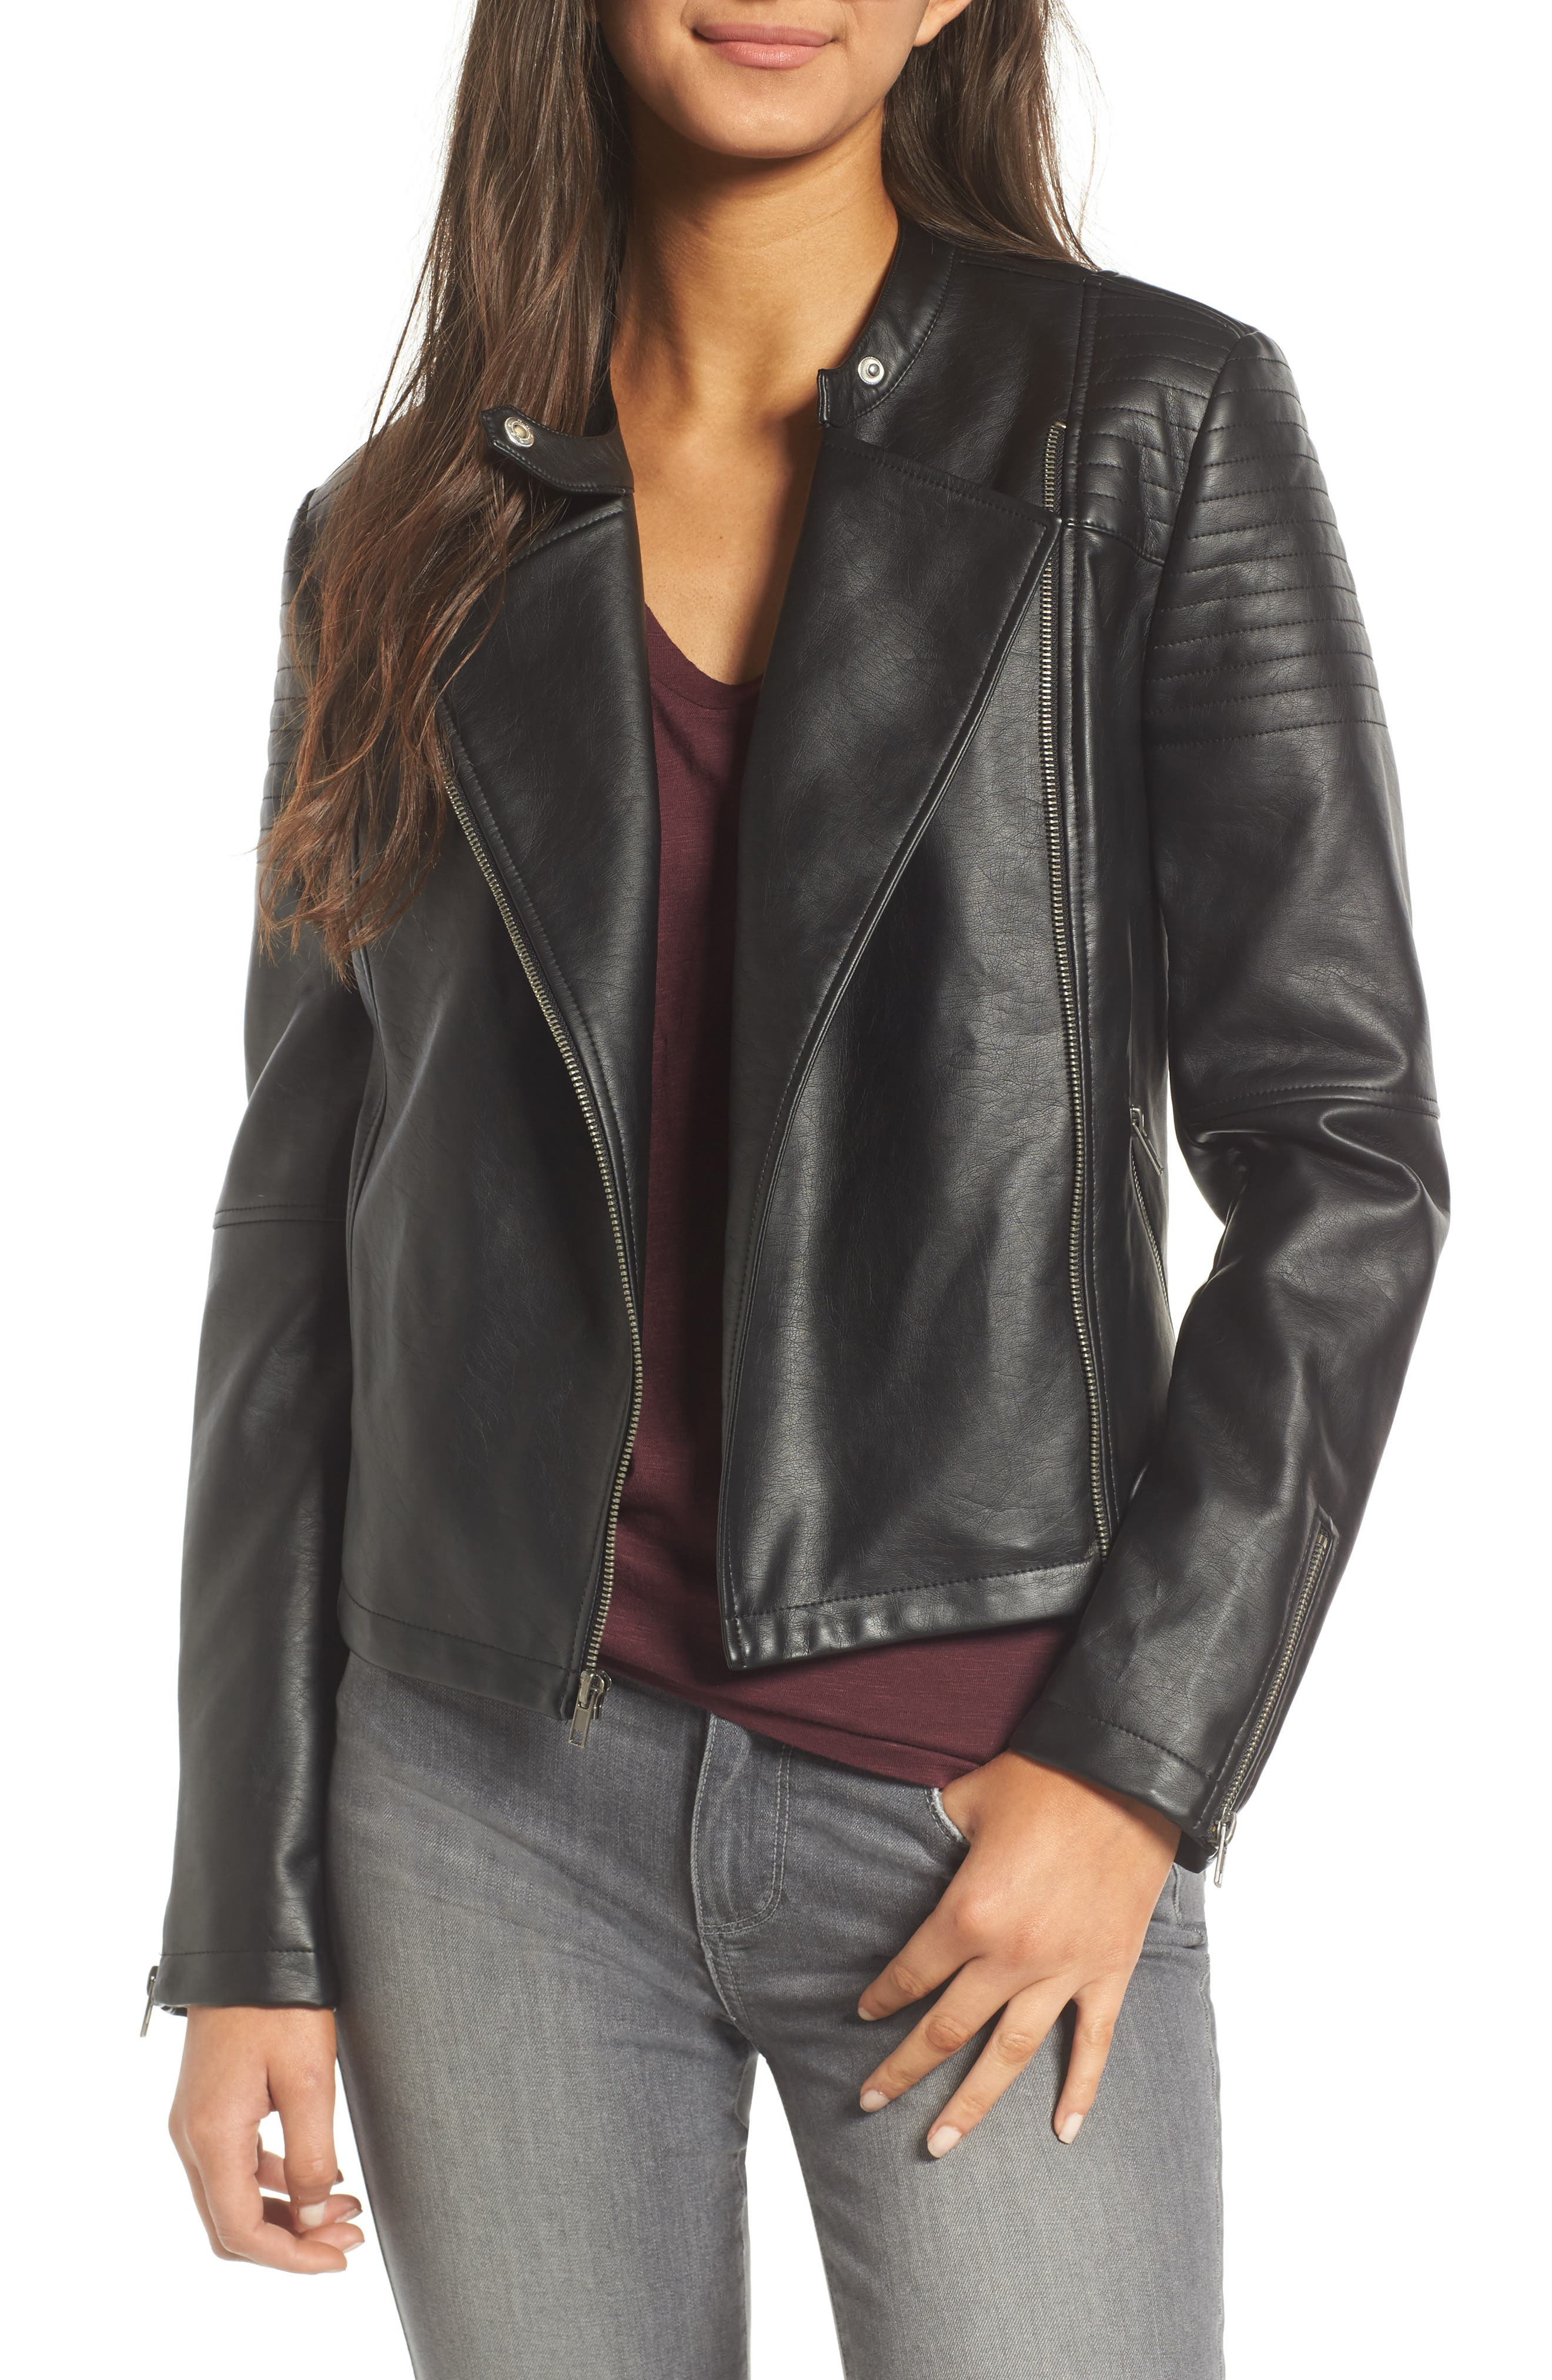 cupcakes and cashmere Cherlin Faux Leather Moto Jacket